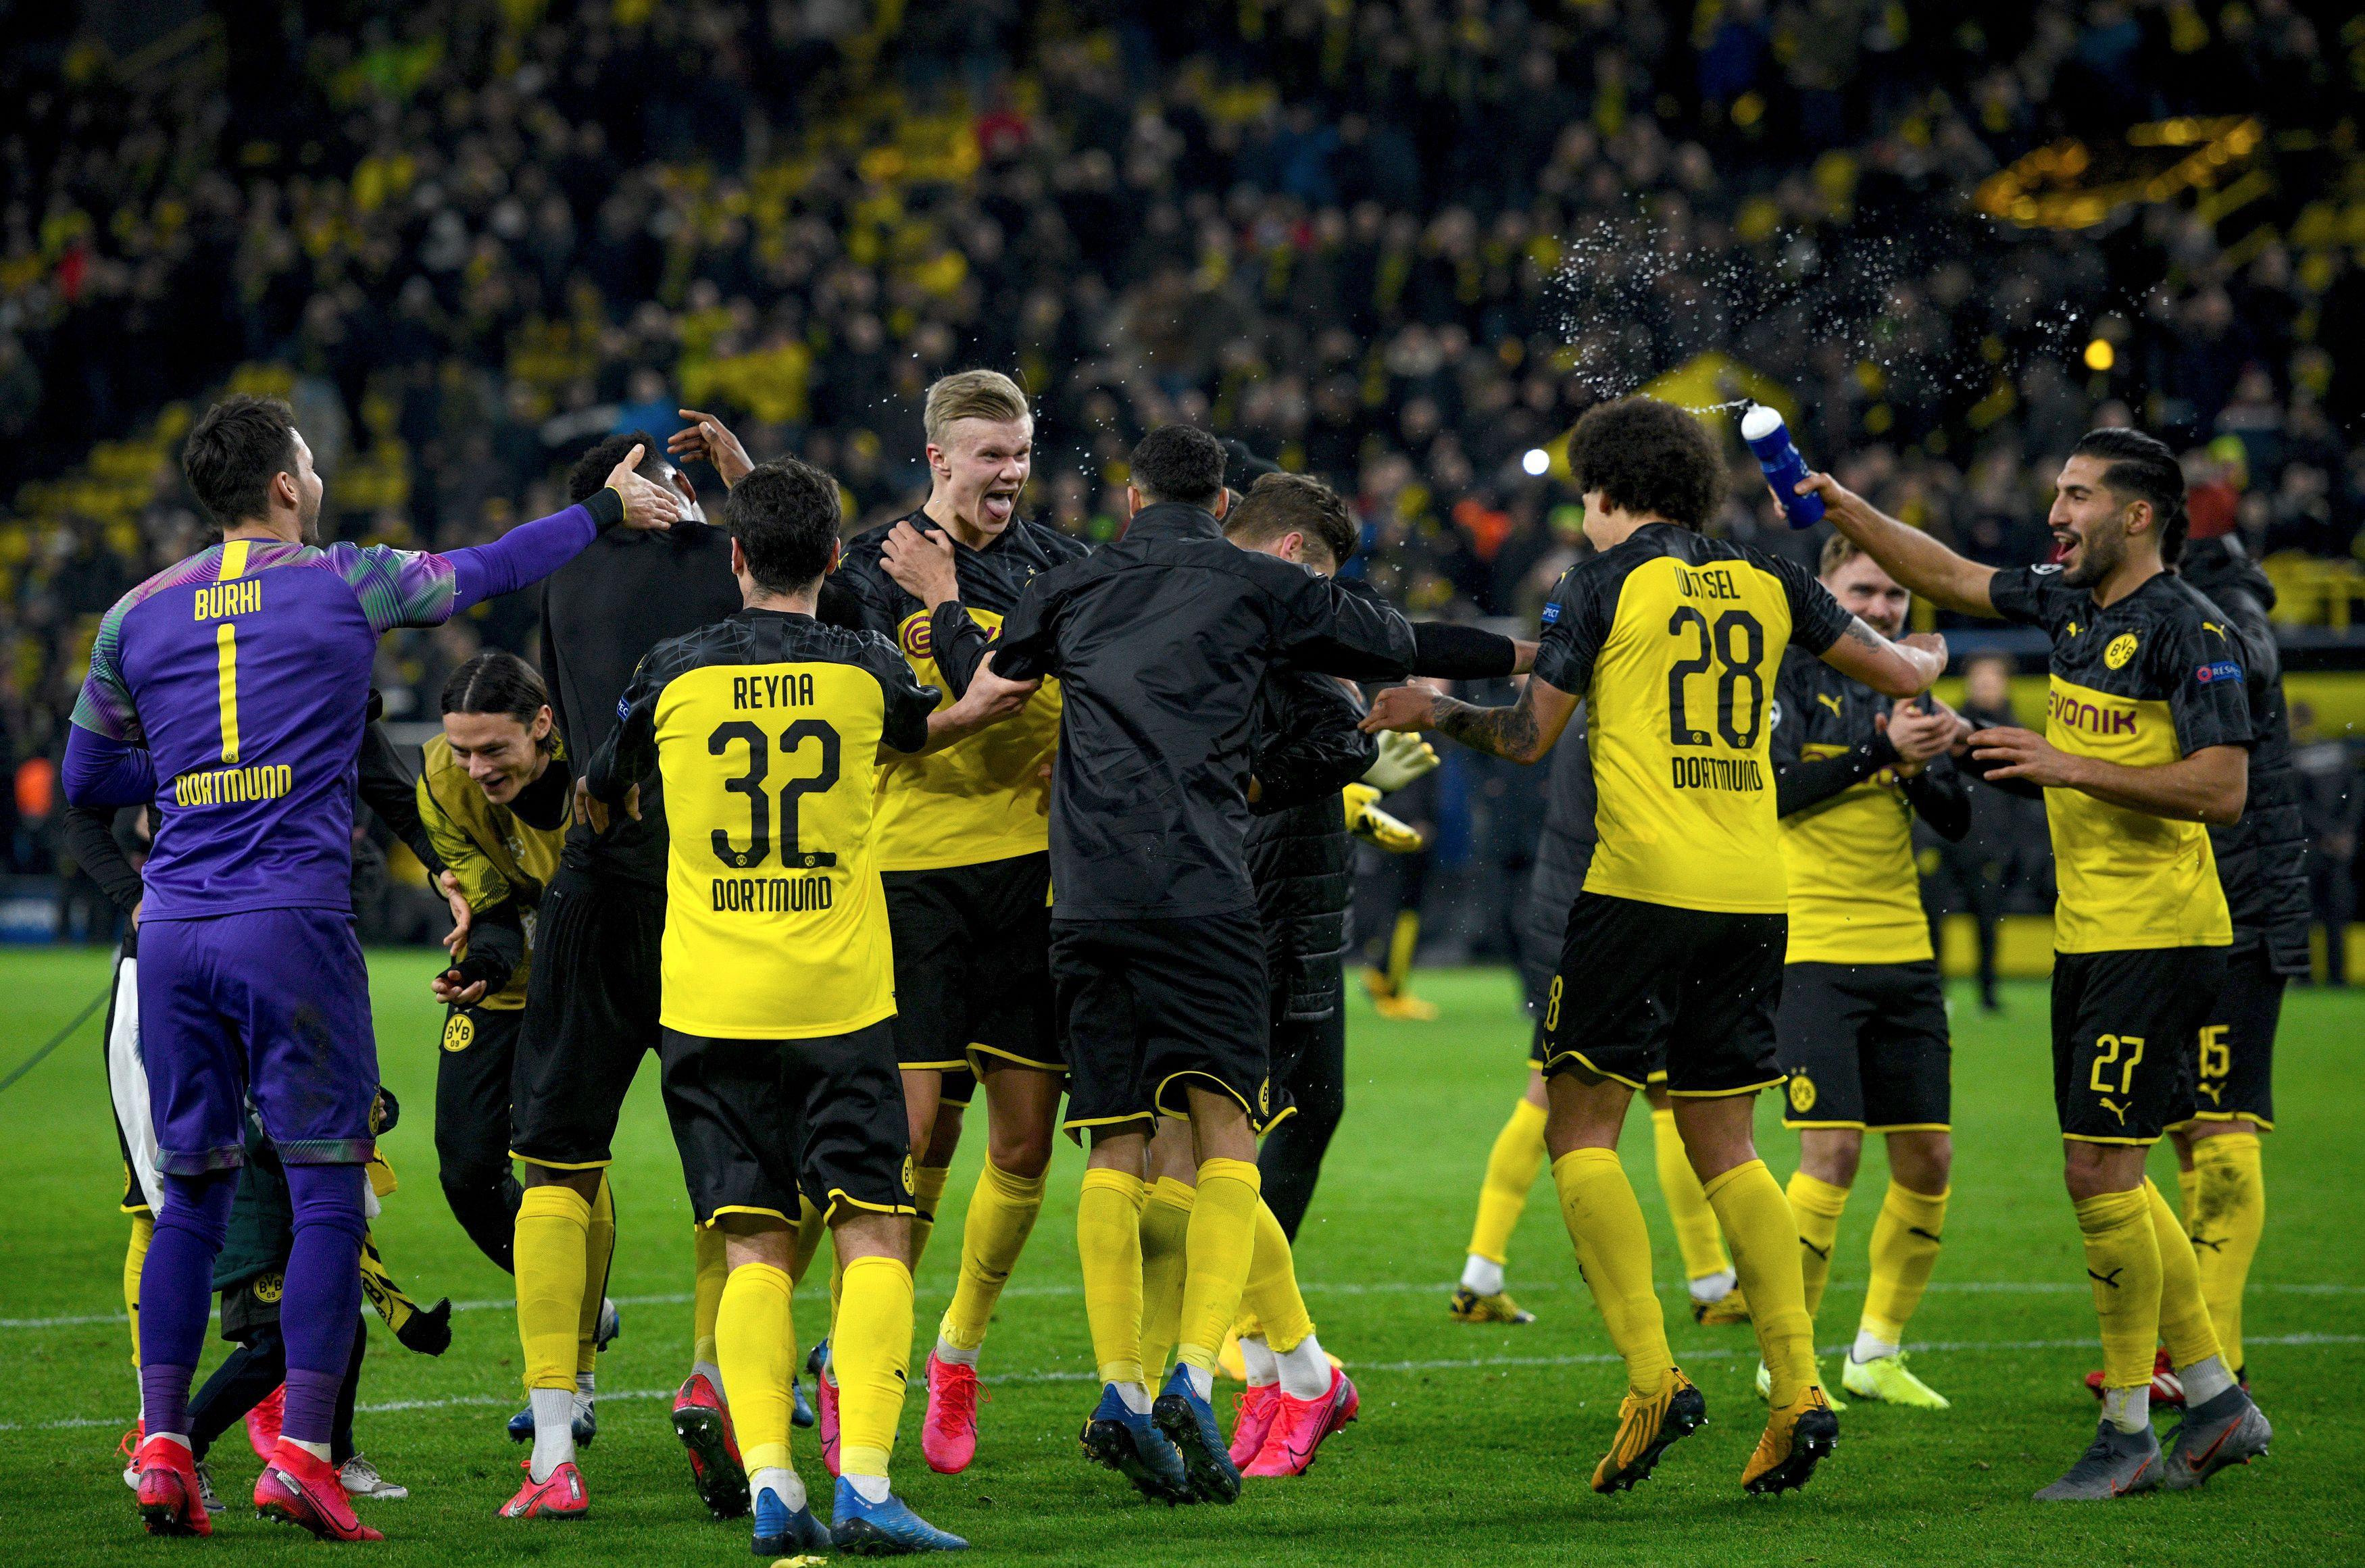 Borussia Dortmund players celebrate at full time.